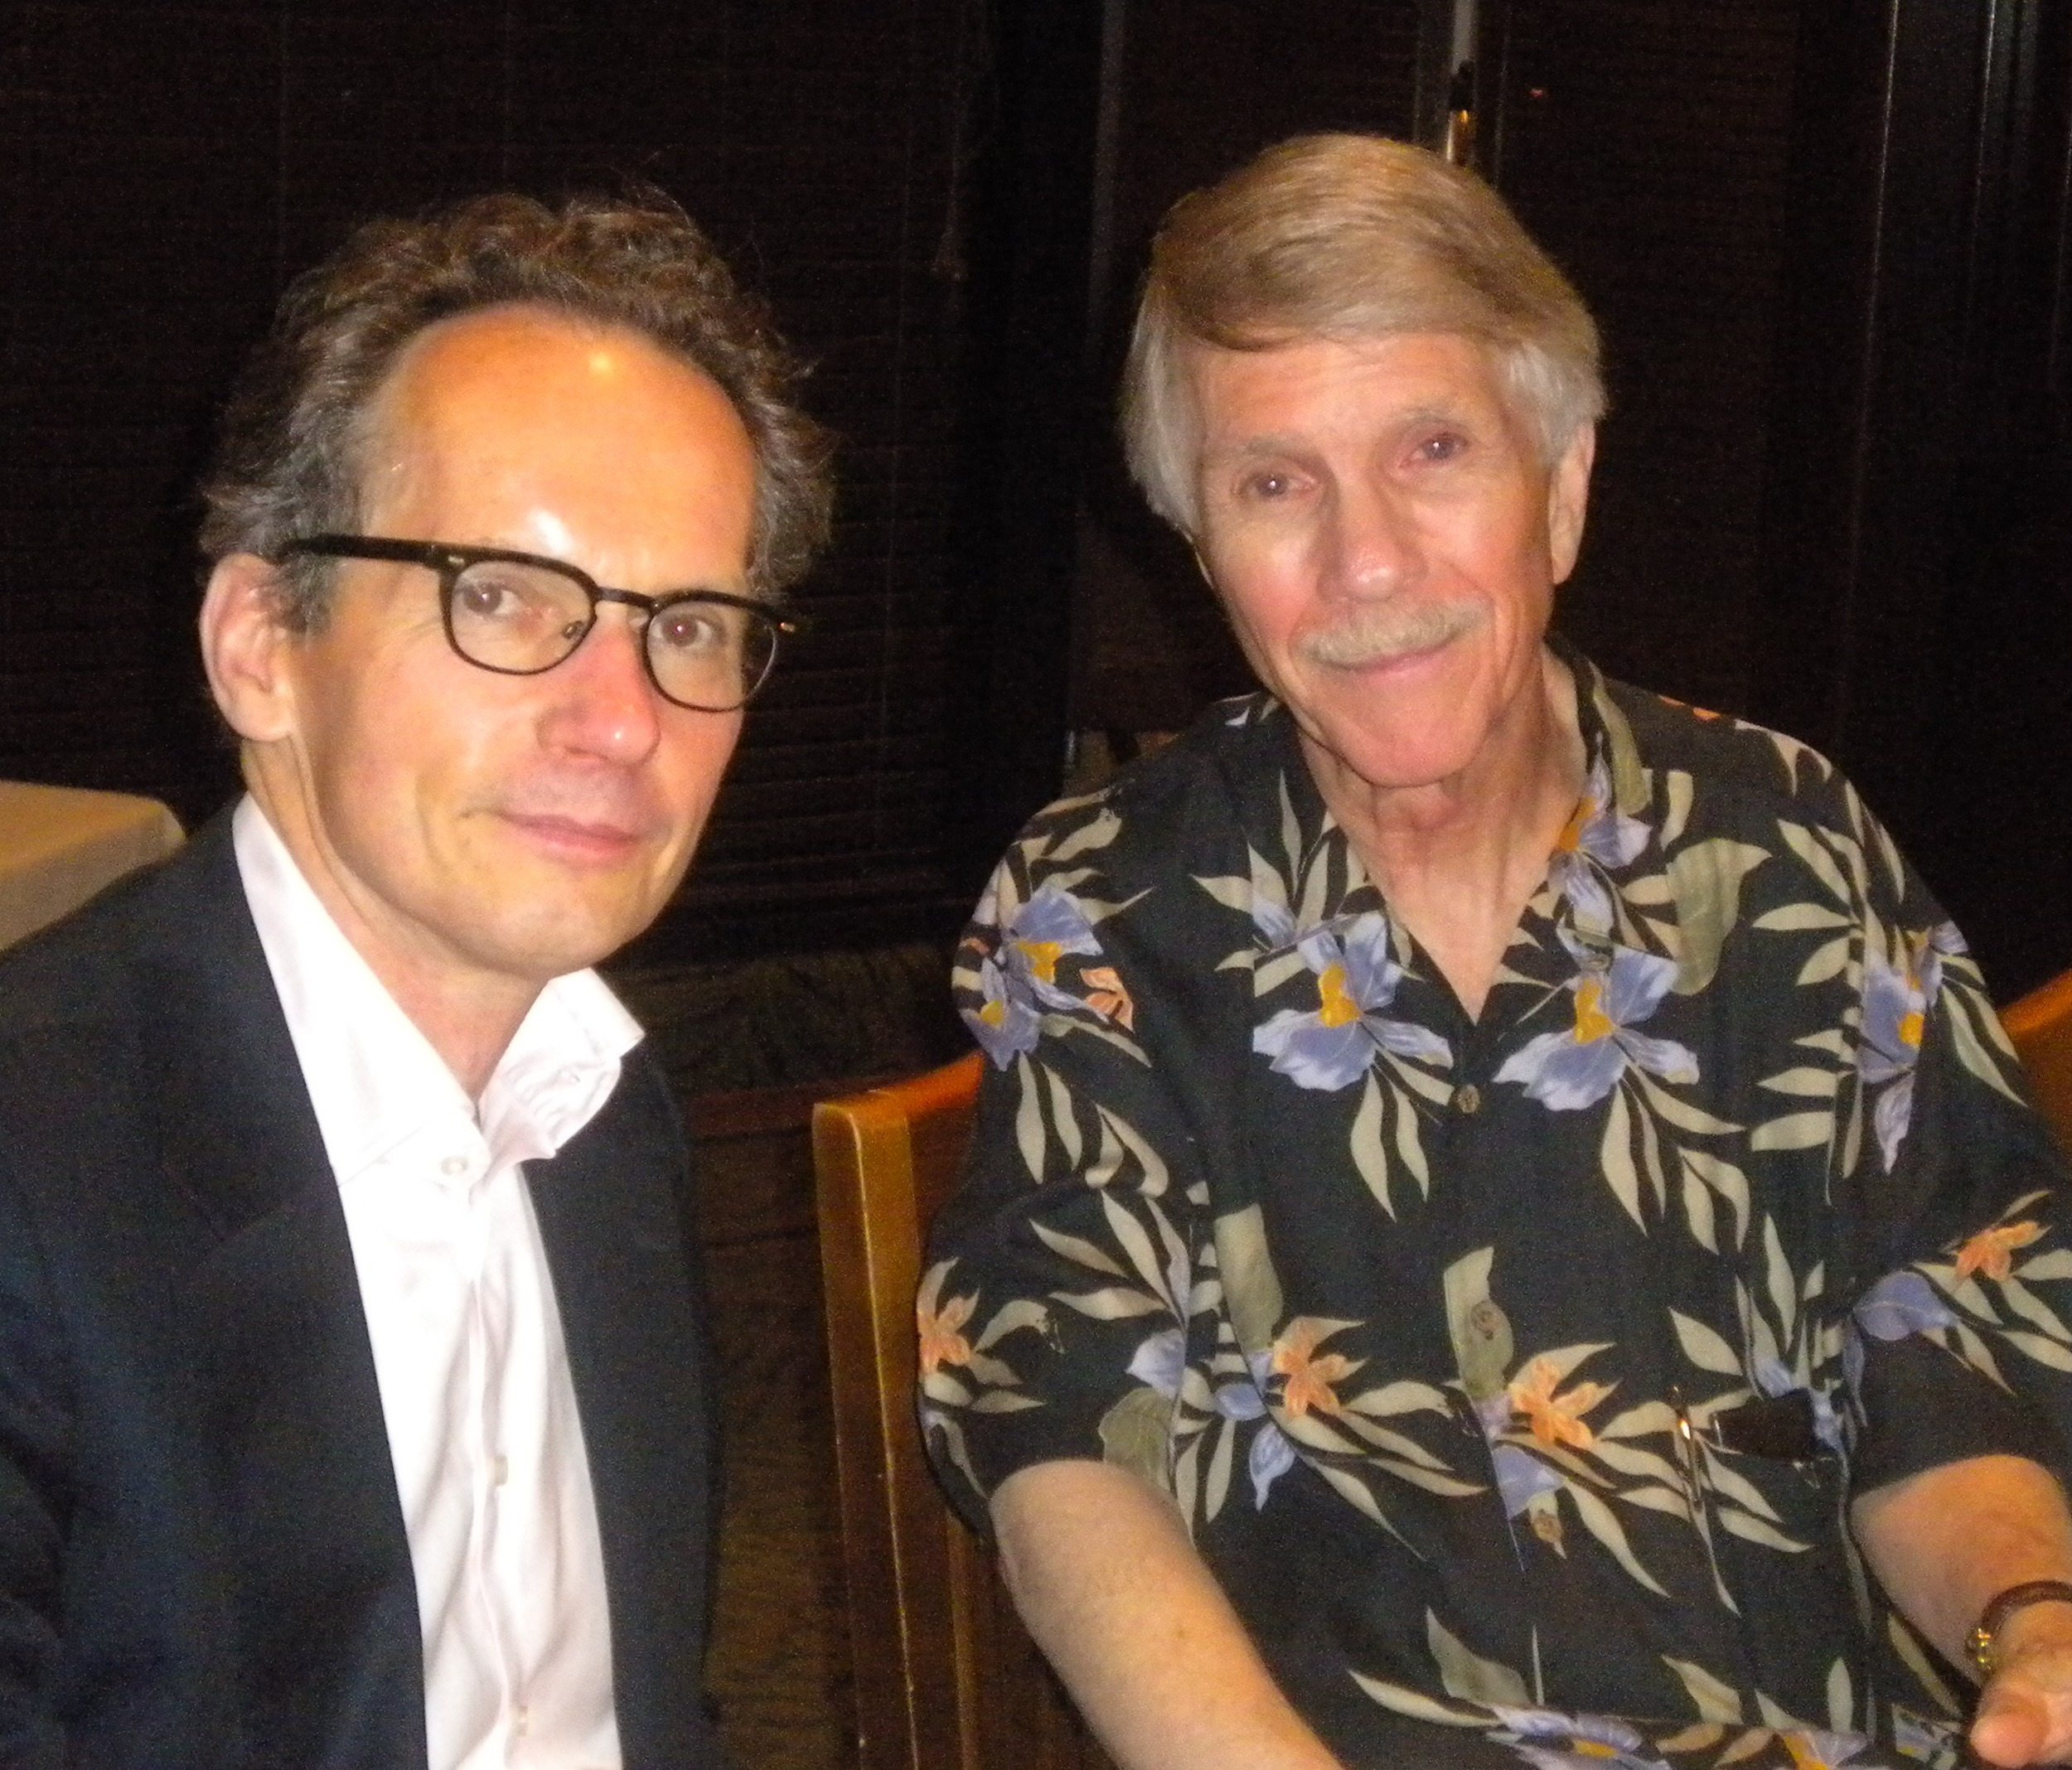 tom rinne and john oldham at the apa in hawaii, 2011